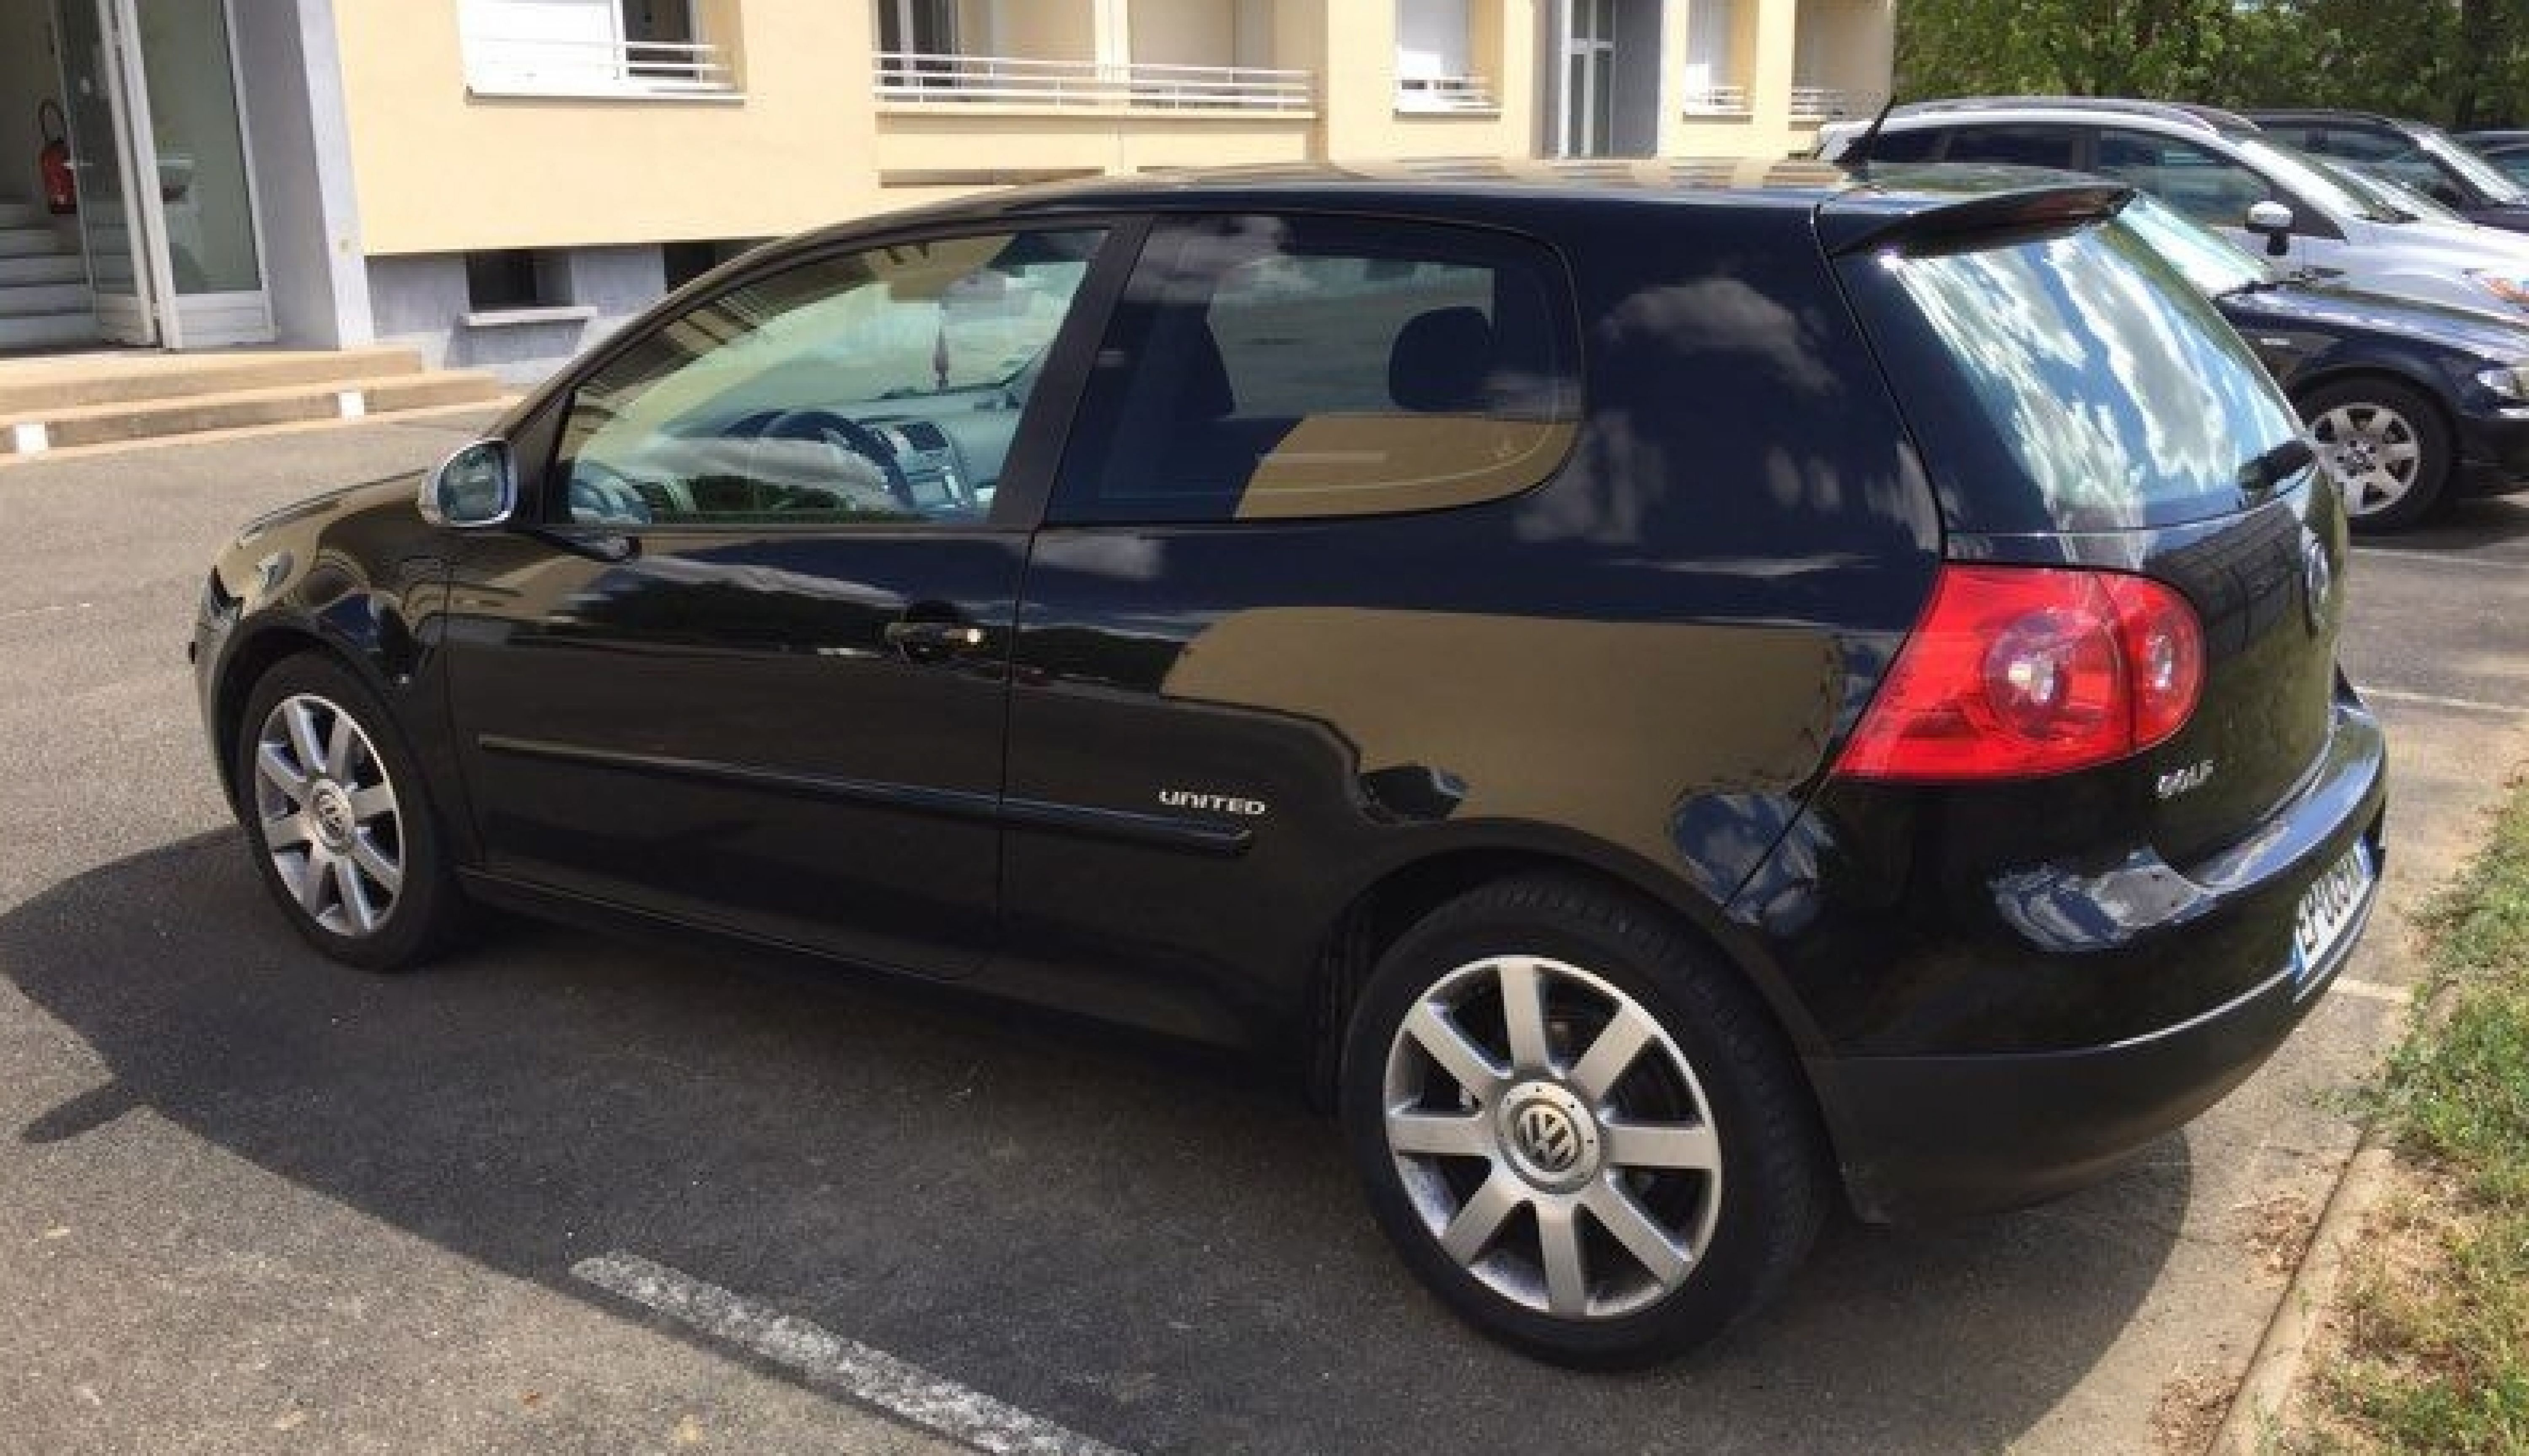 Golf v 1.9 tdi  - Photo 2